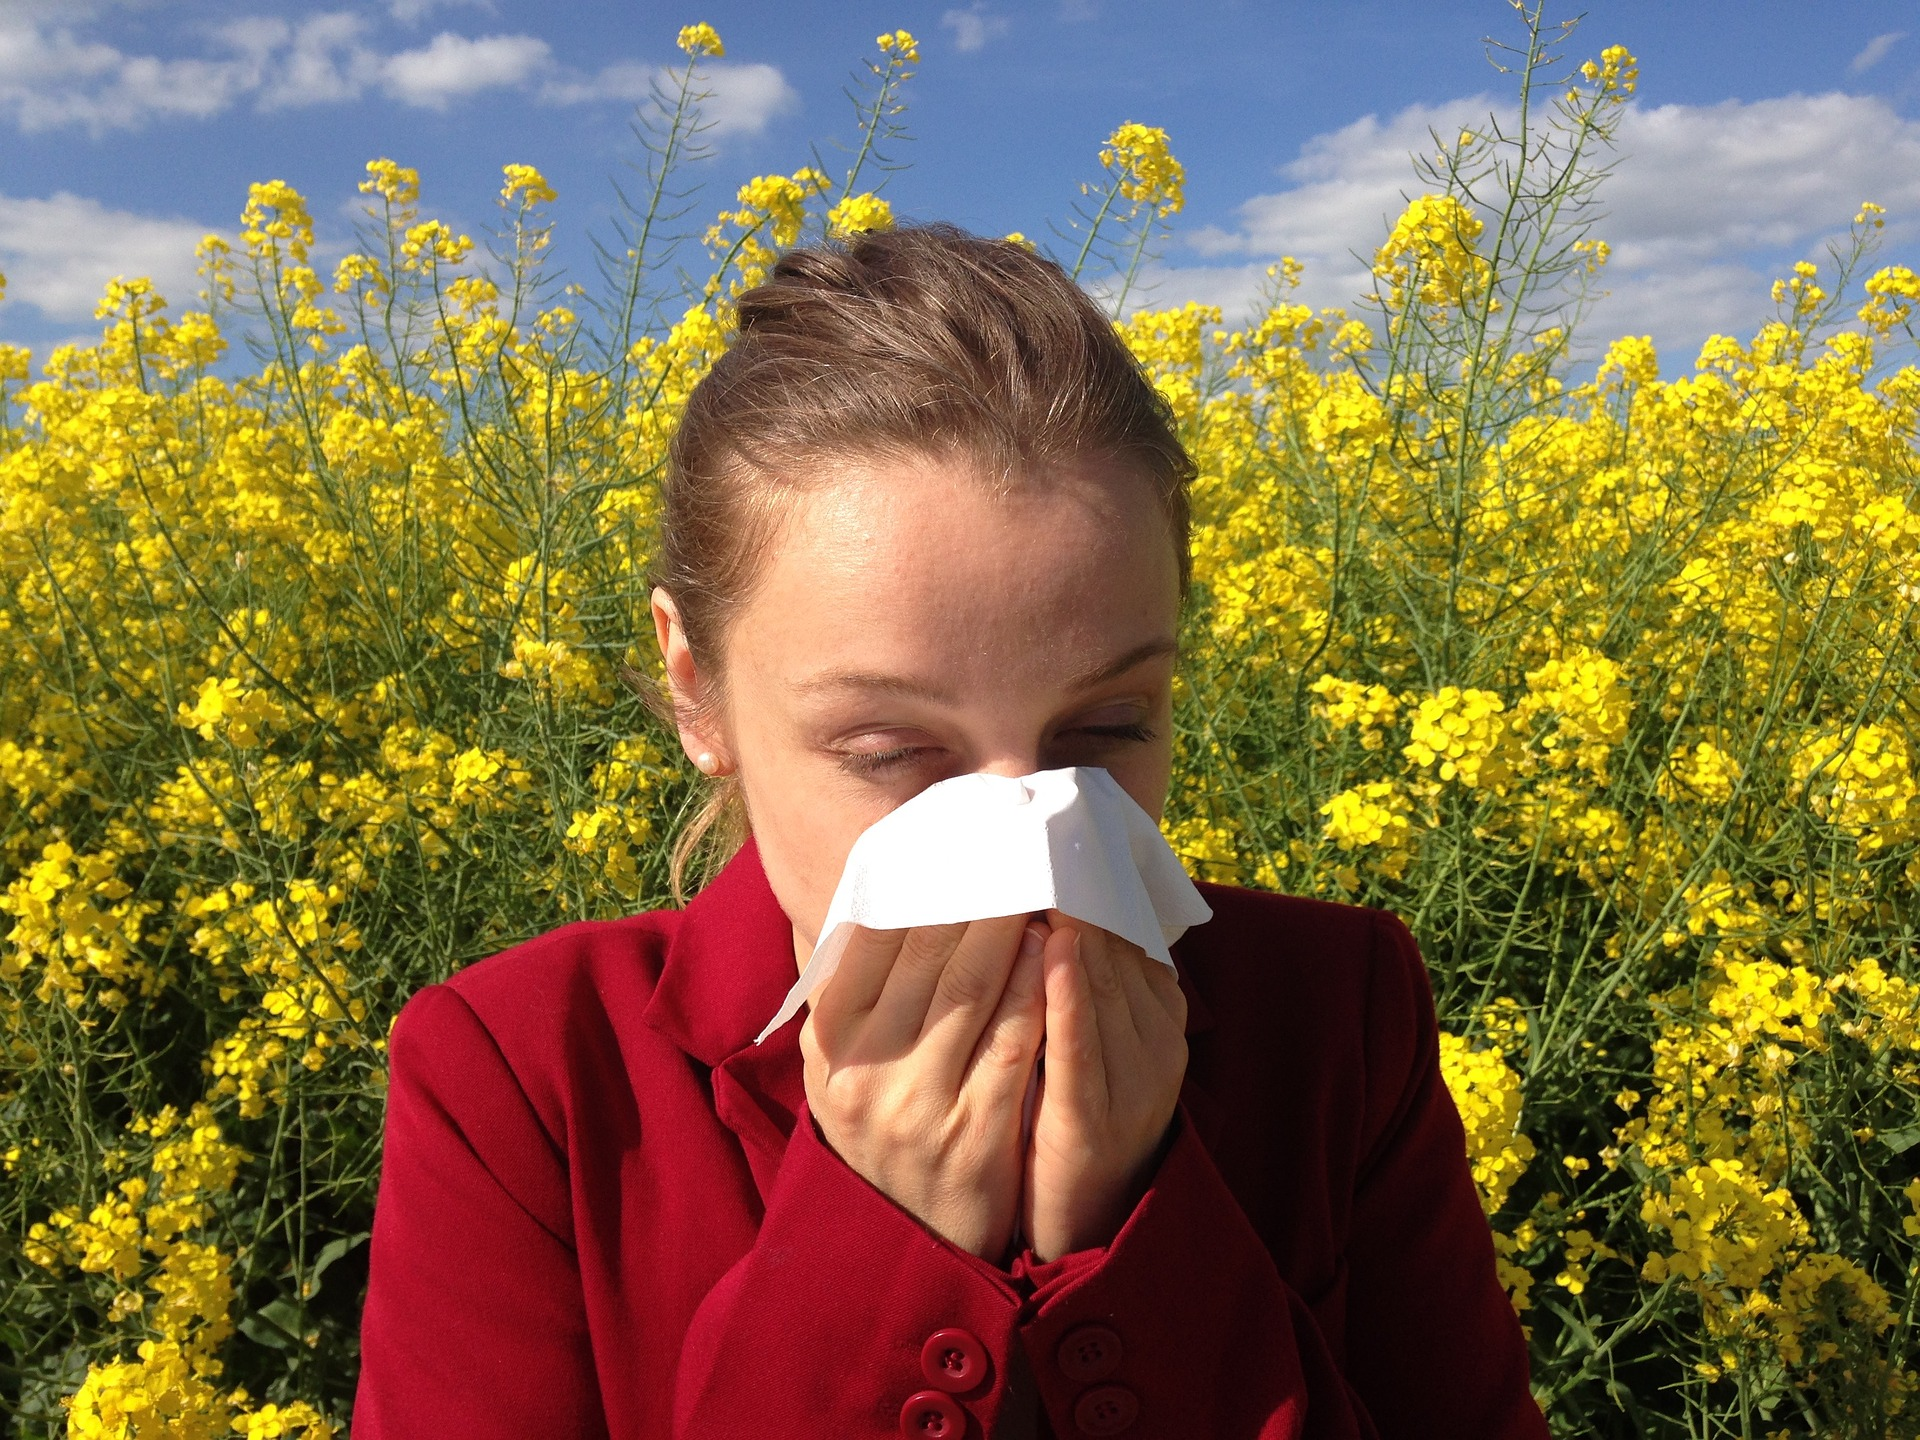 Suffering from Seasonal Allergies